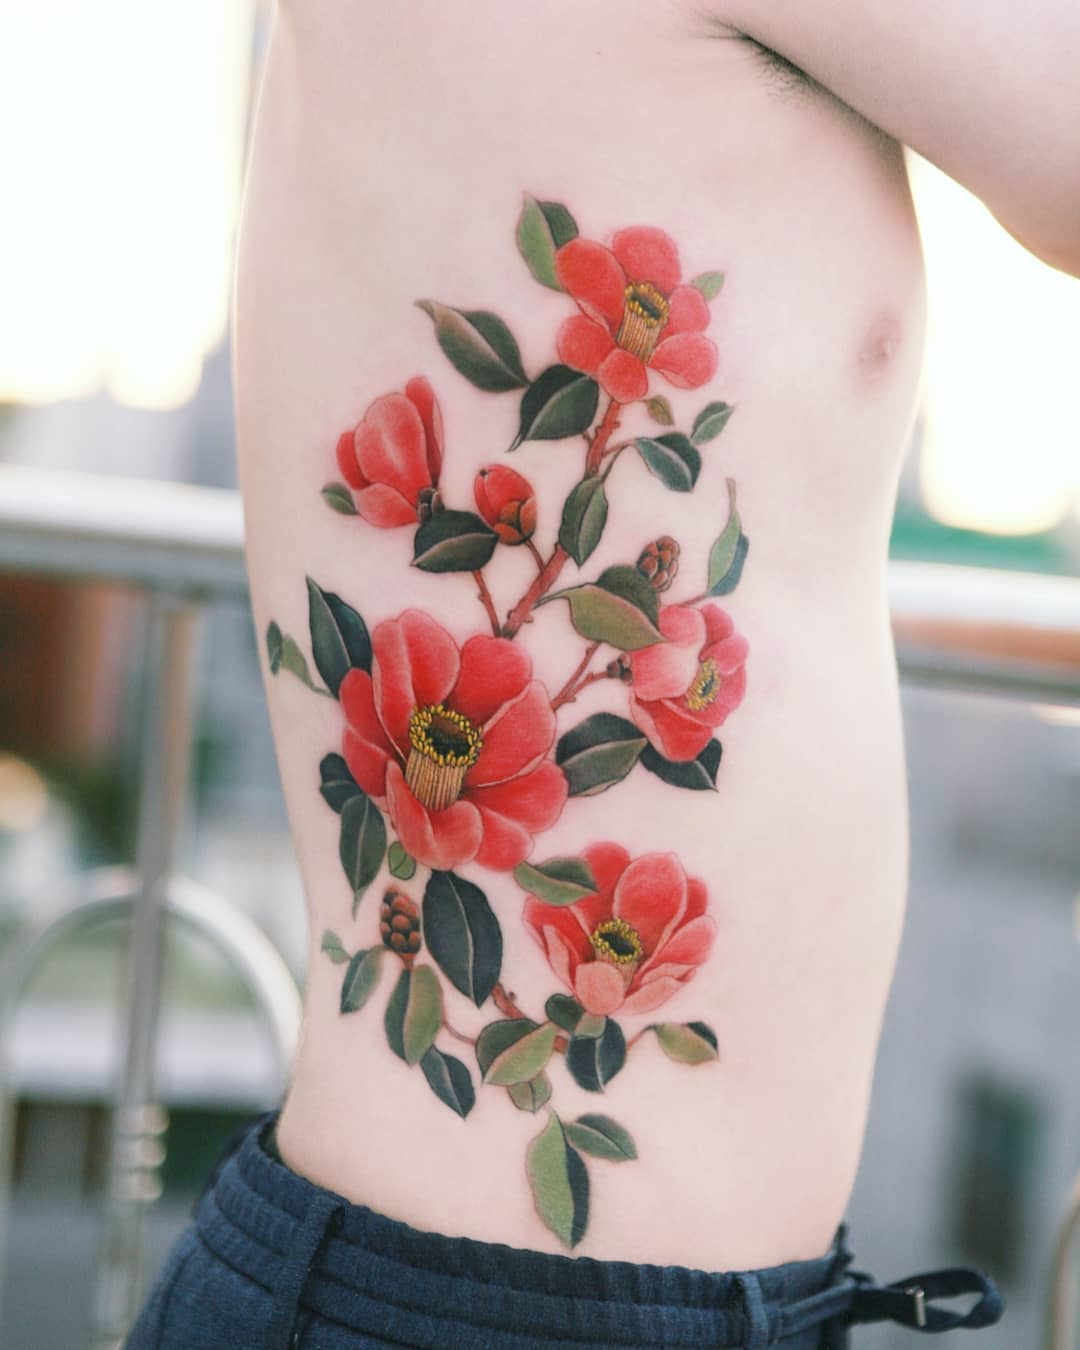 camellia red blooming flower tattoo